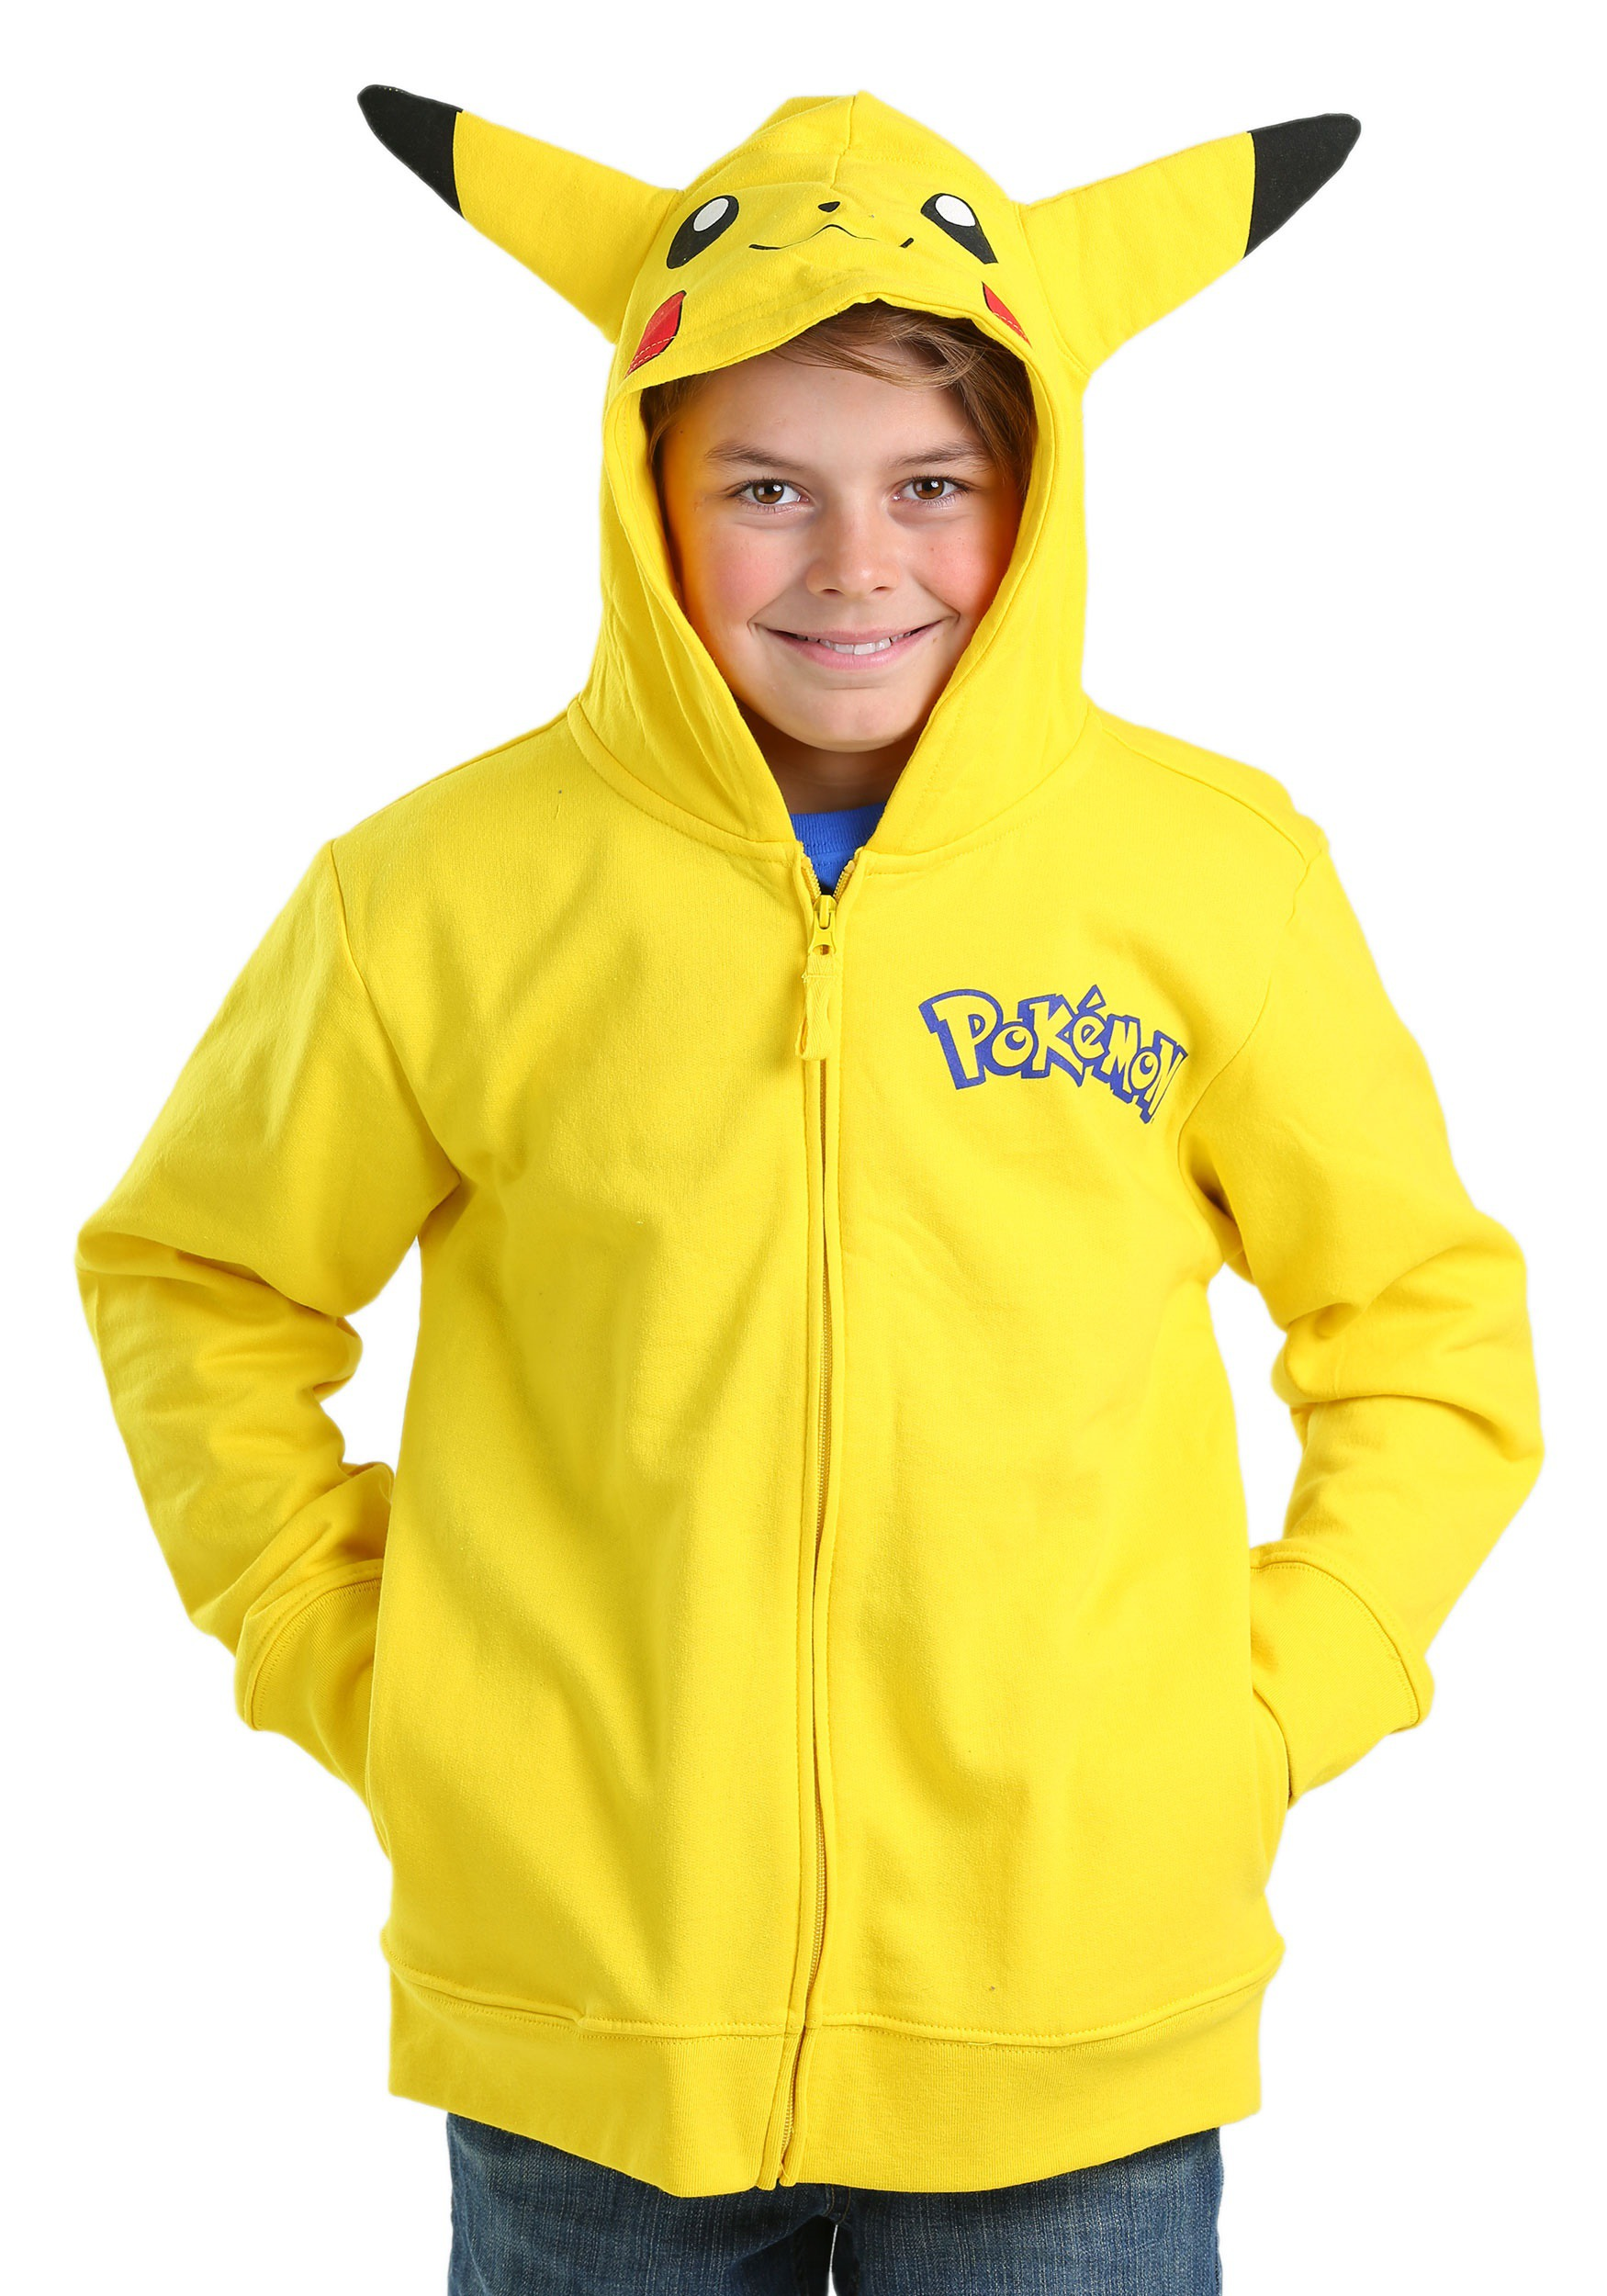 Kids Pokemon Pikachu Costume Hooded Sweatshirt FZMUSB156-6B30